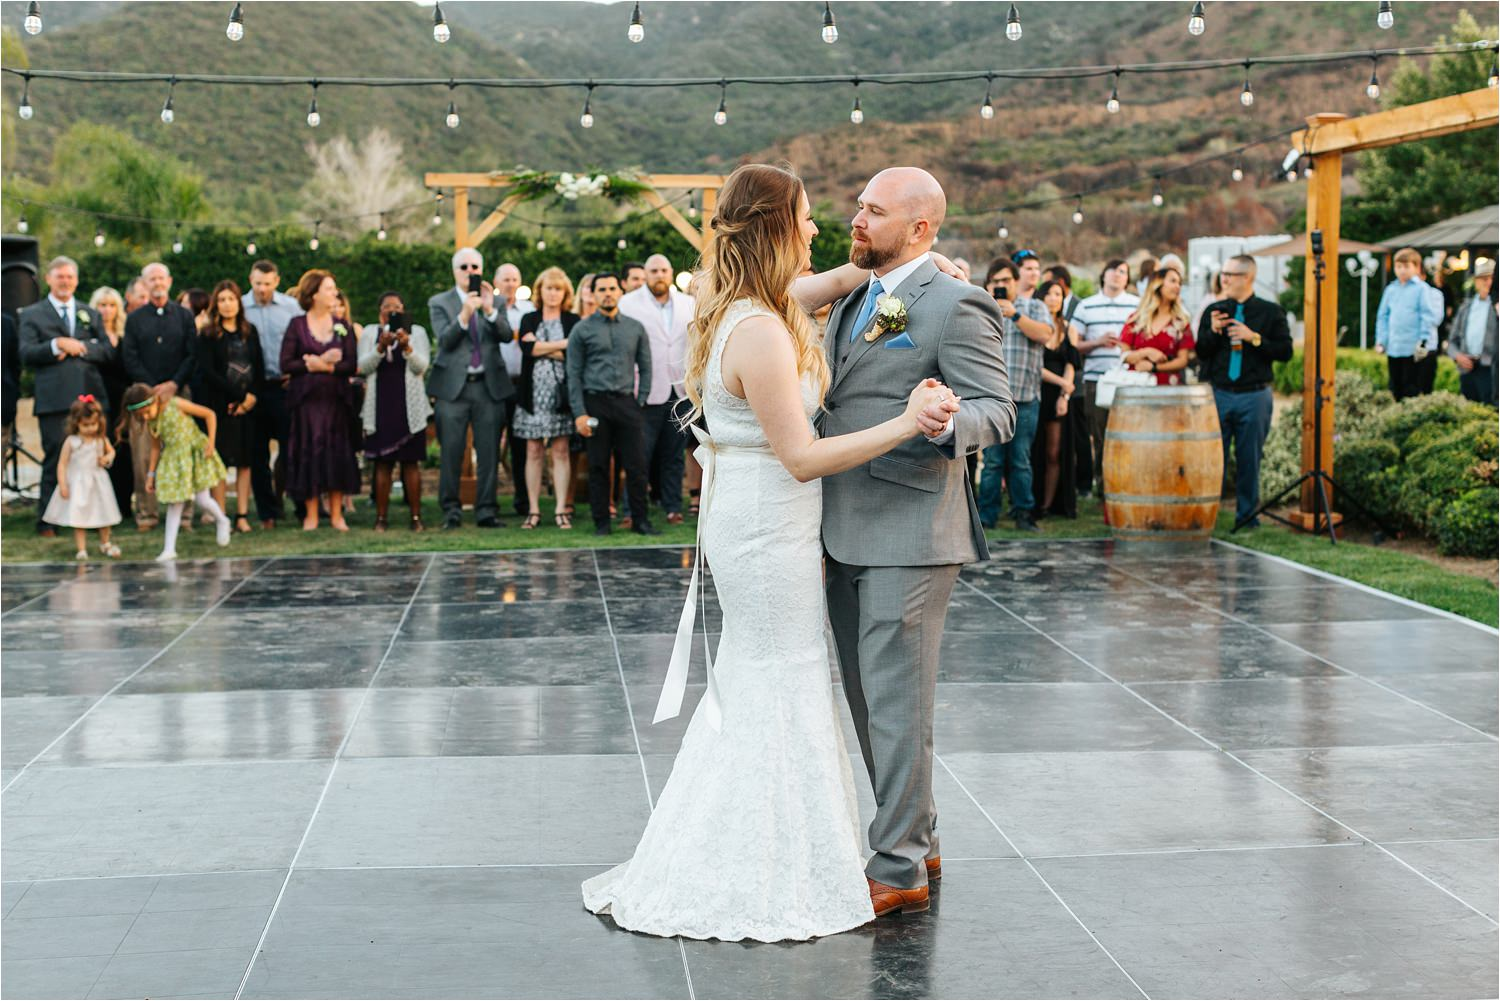 Family and friends watch as bride and groom share their first dance as husband and wife - https://brittneyhannonphotography.com